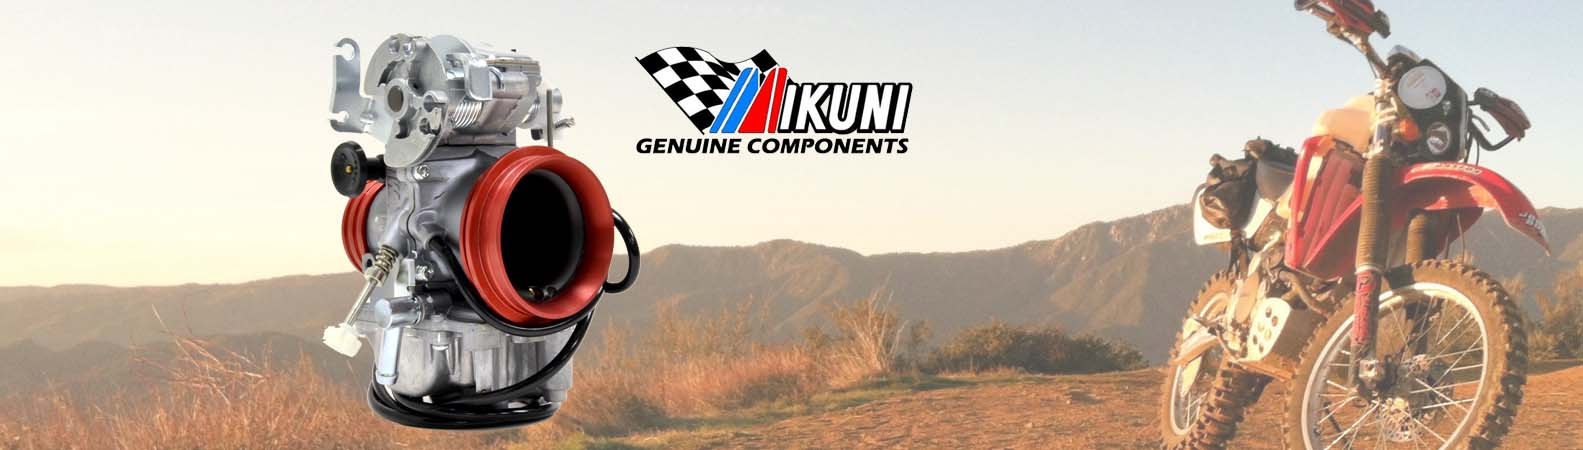 Enduro and street bike carburetor kits